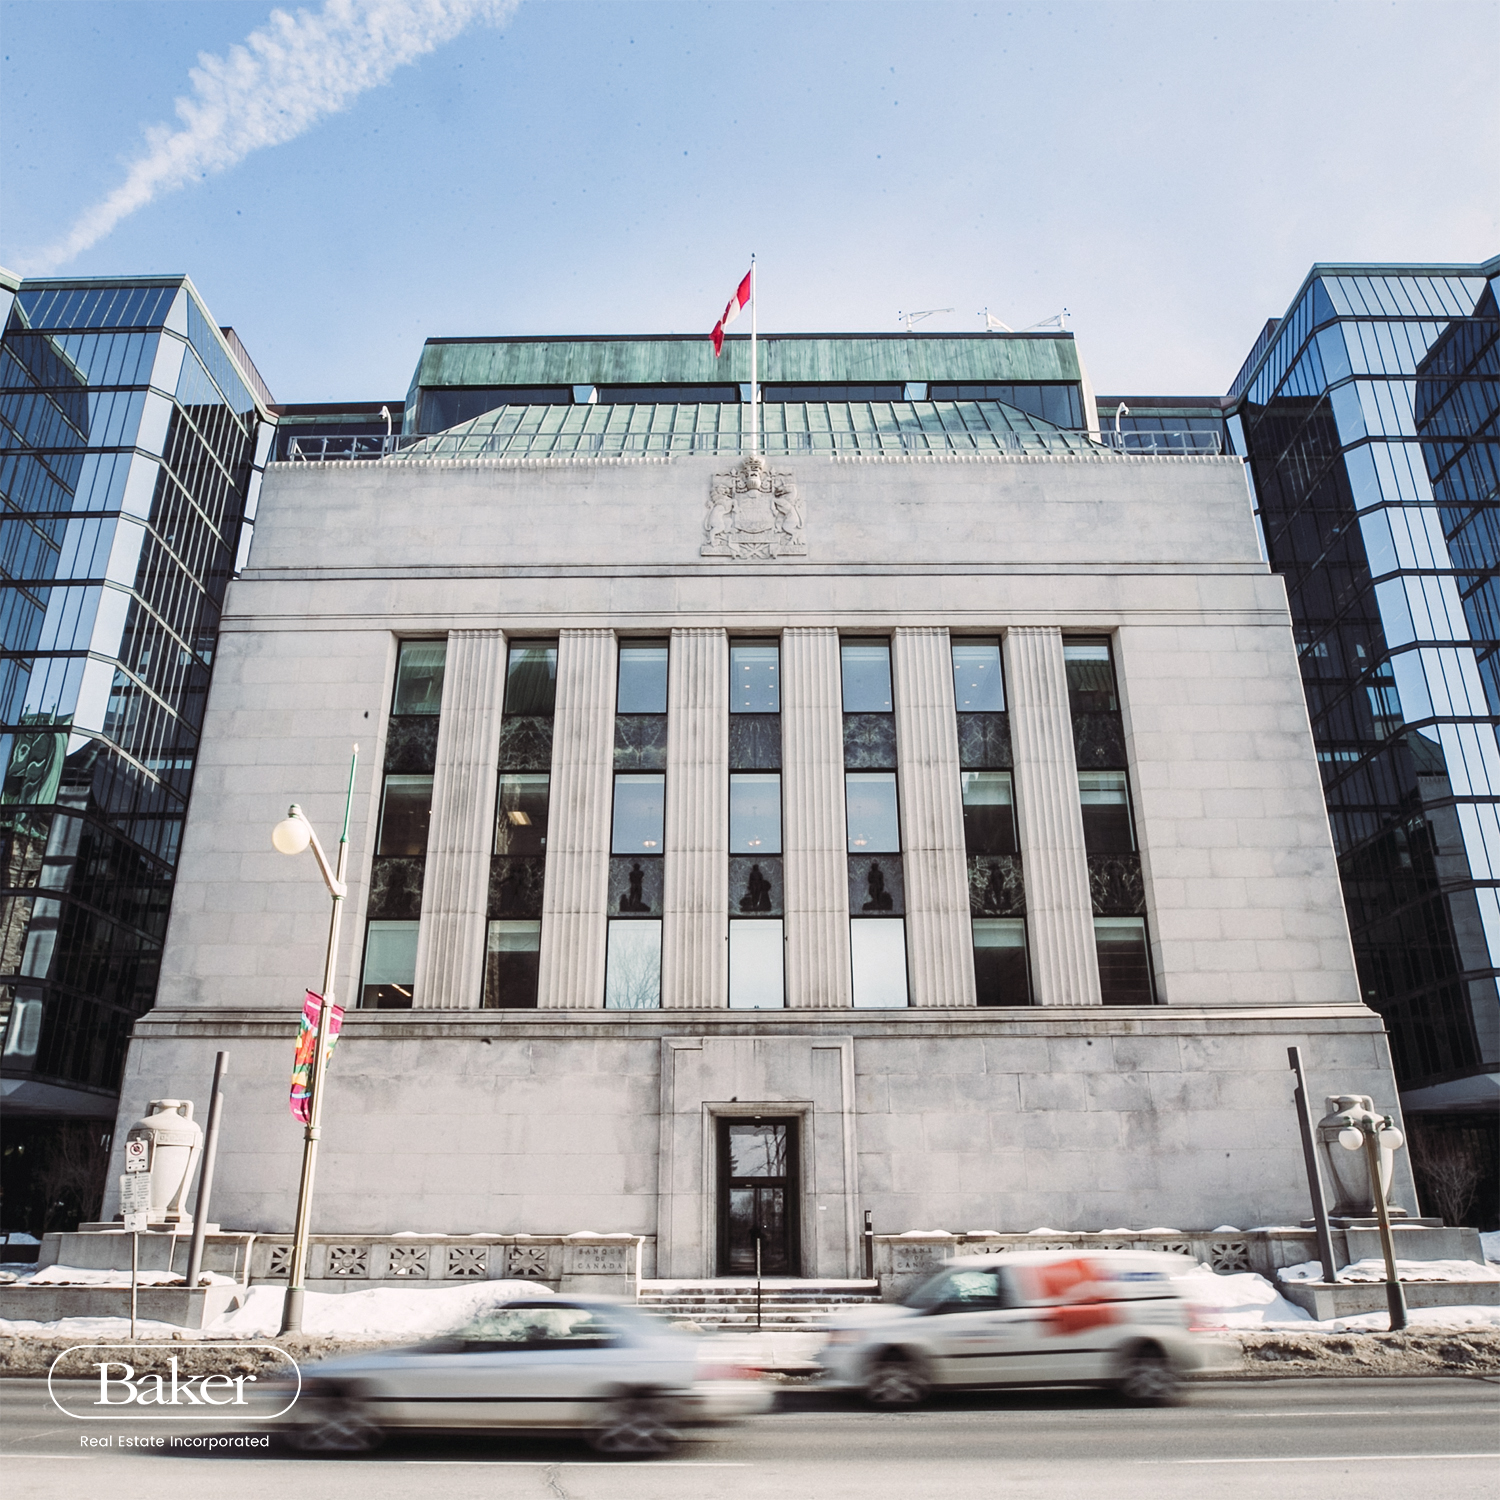 2020.03.06 Bank of Canada